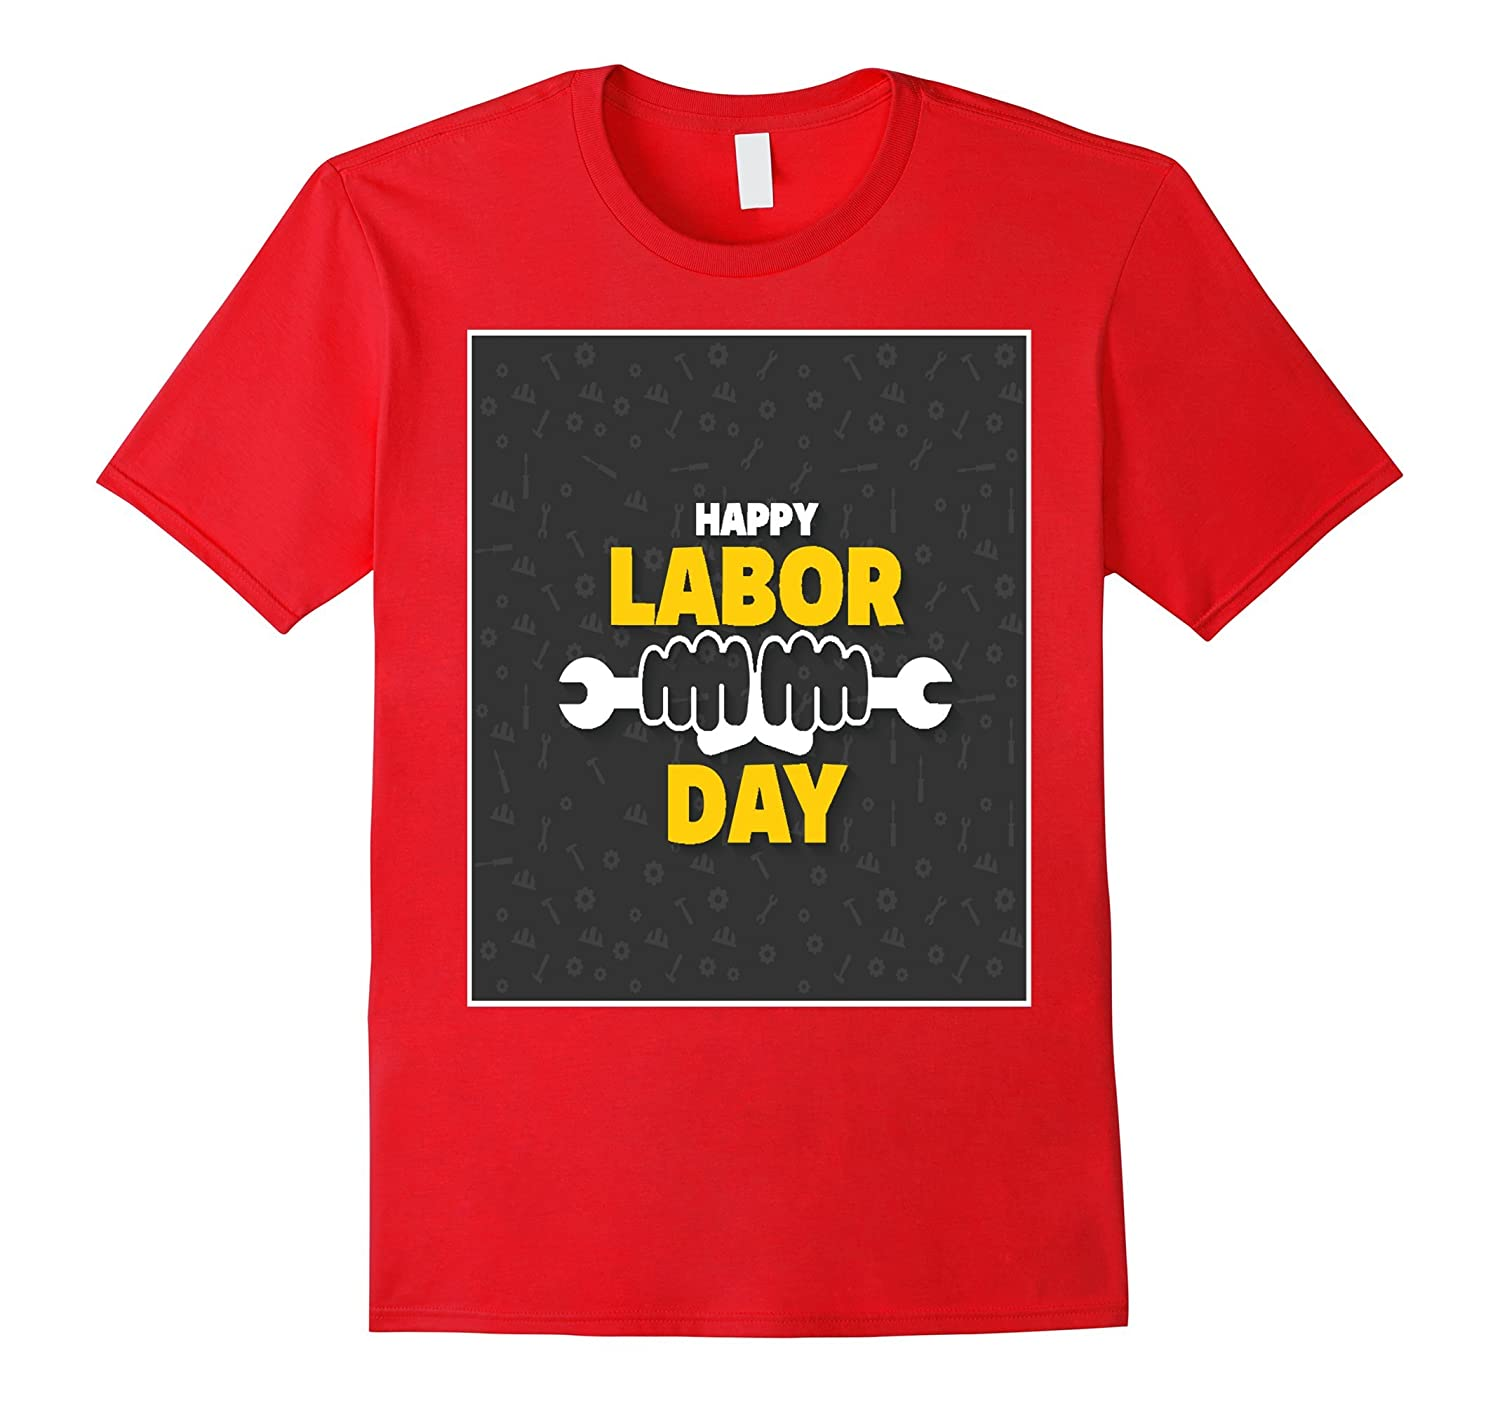 Happy Labor Day Wrench T-Shirt For Workers-BN